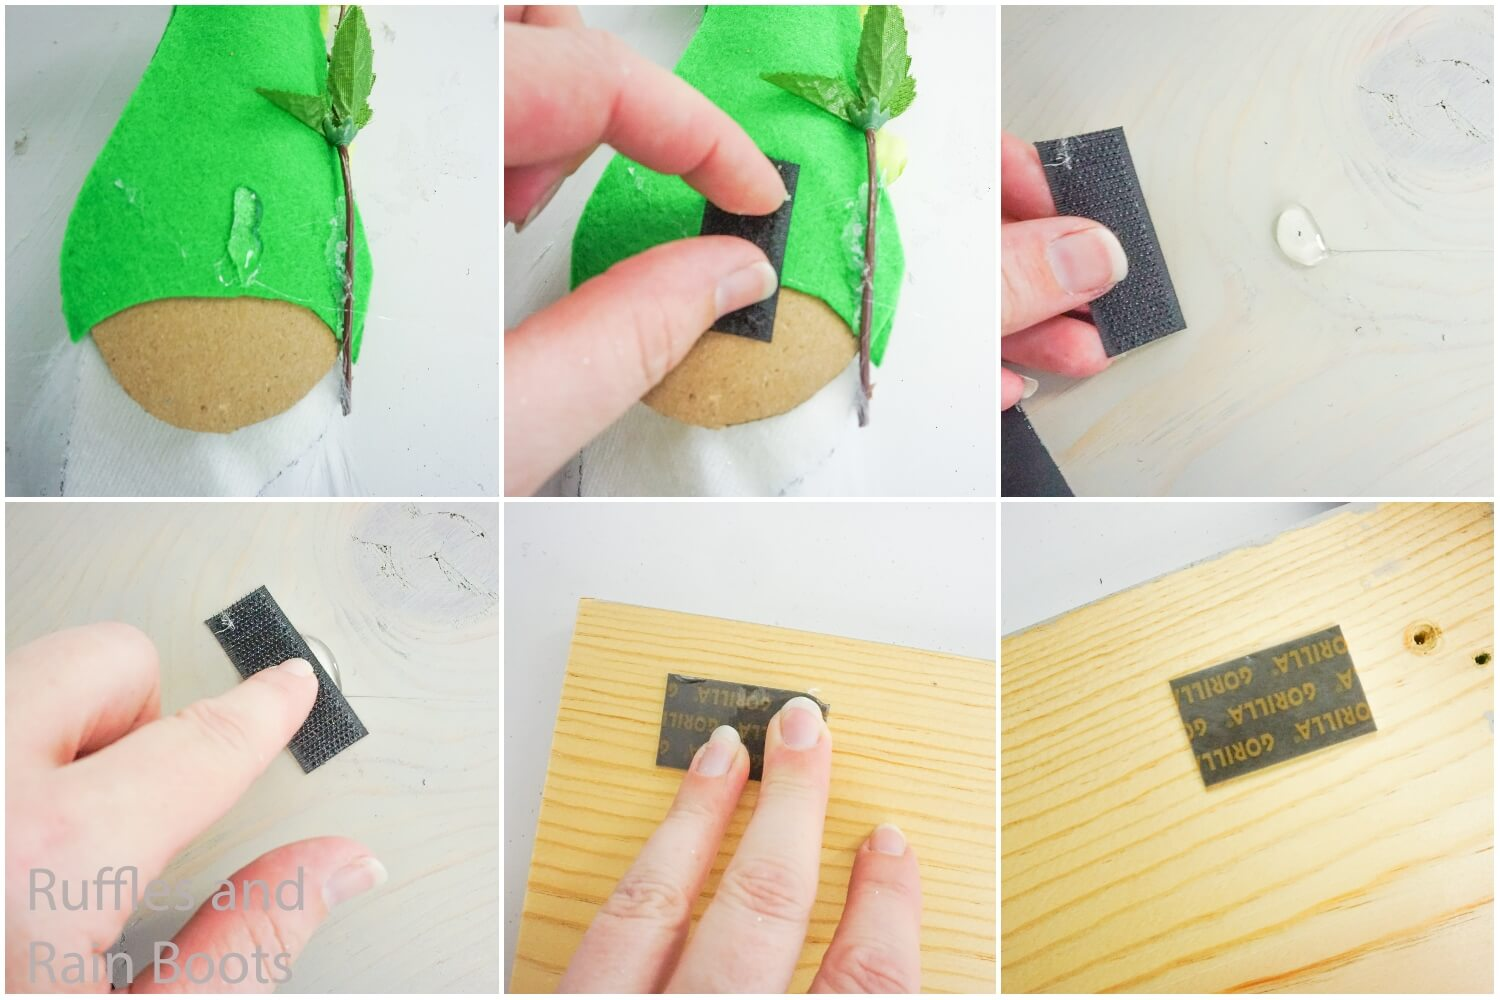 photo collage tutorial of how to make seasonal home sign by adding velcro to gnomes and mounting strips to the wood